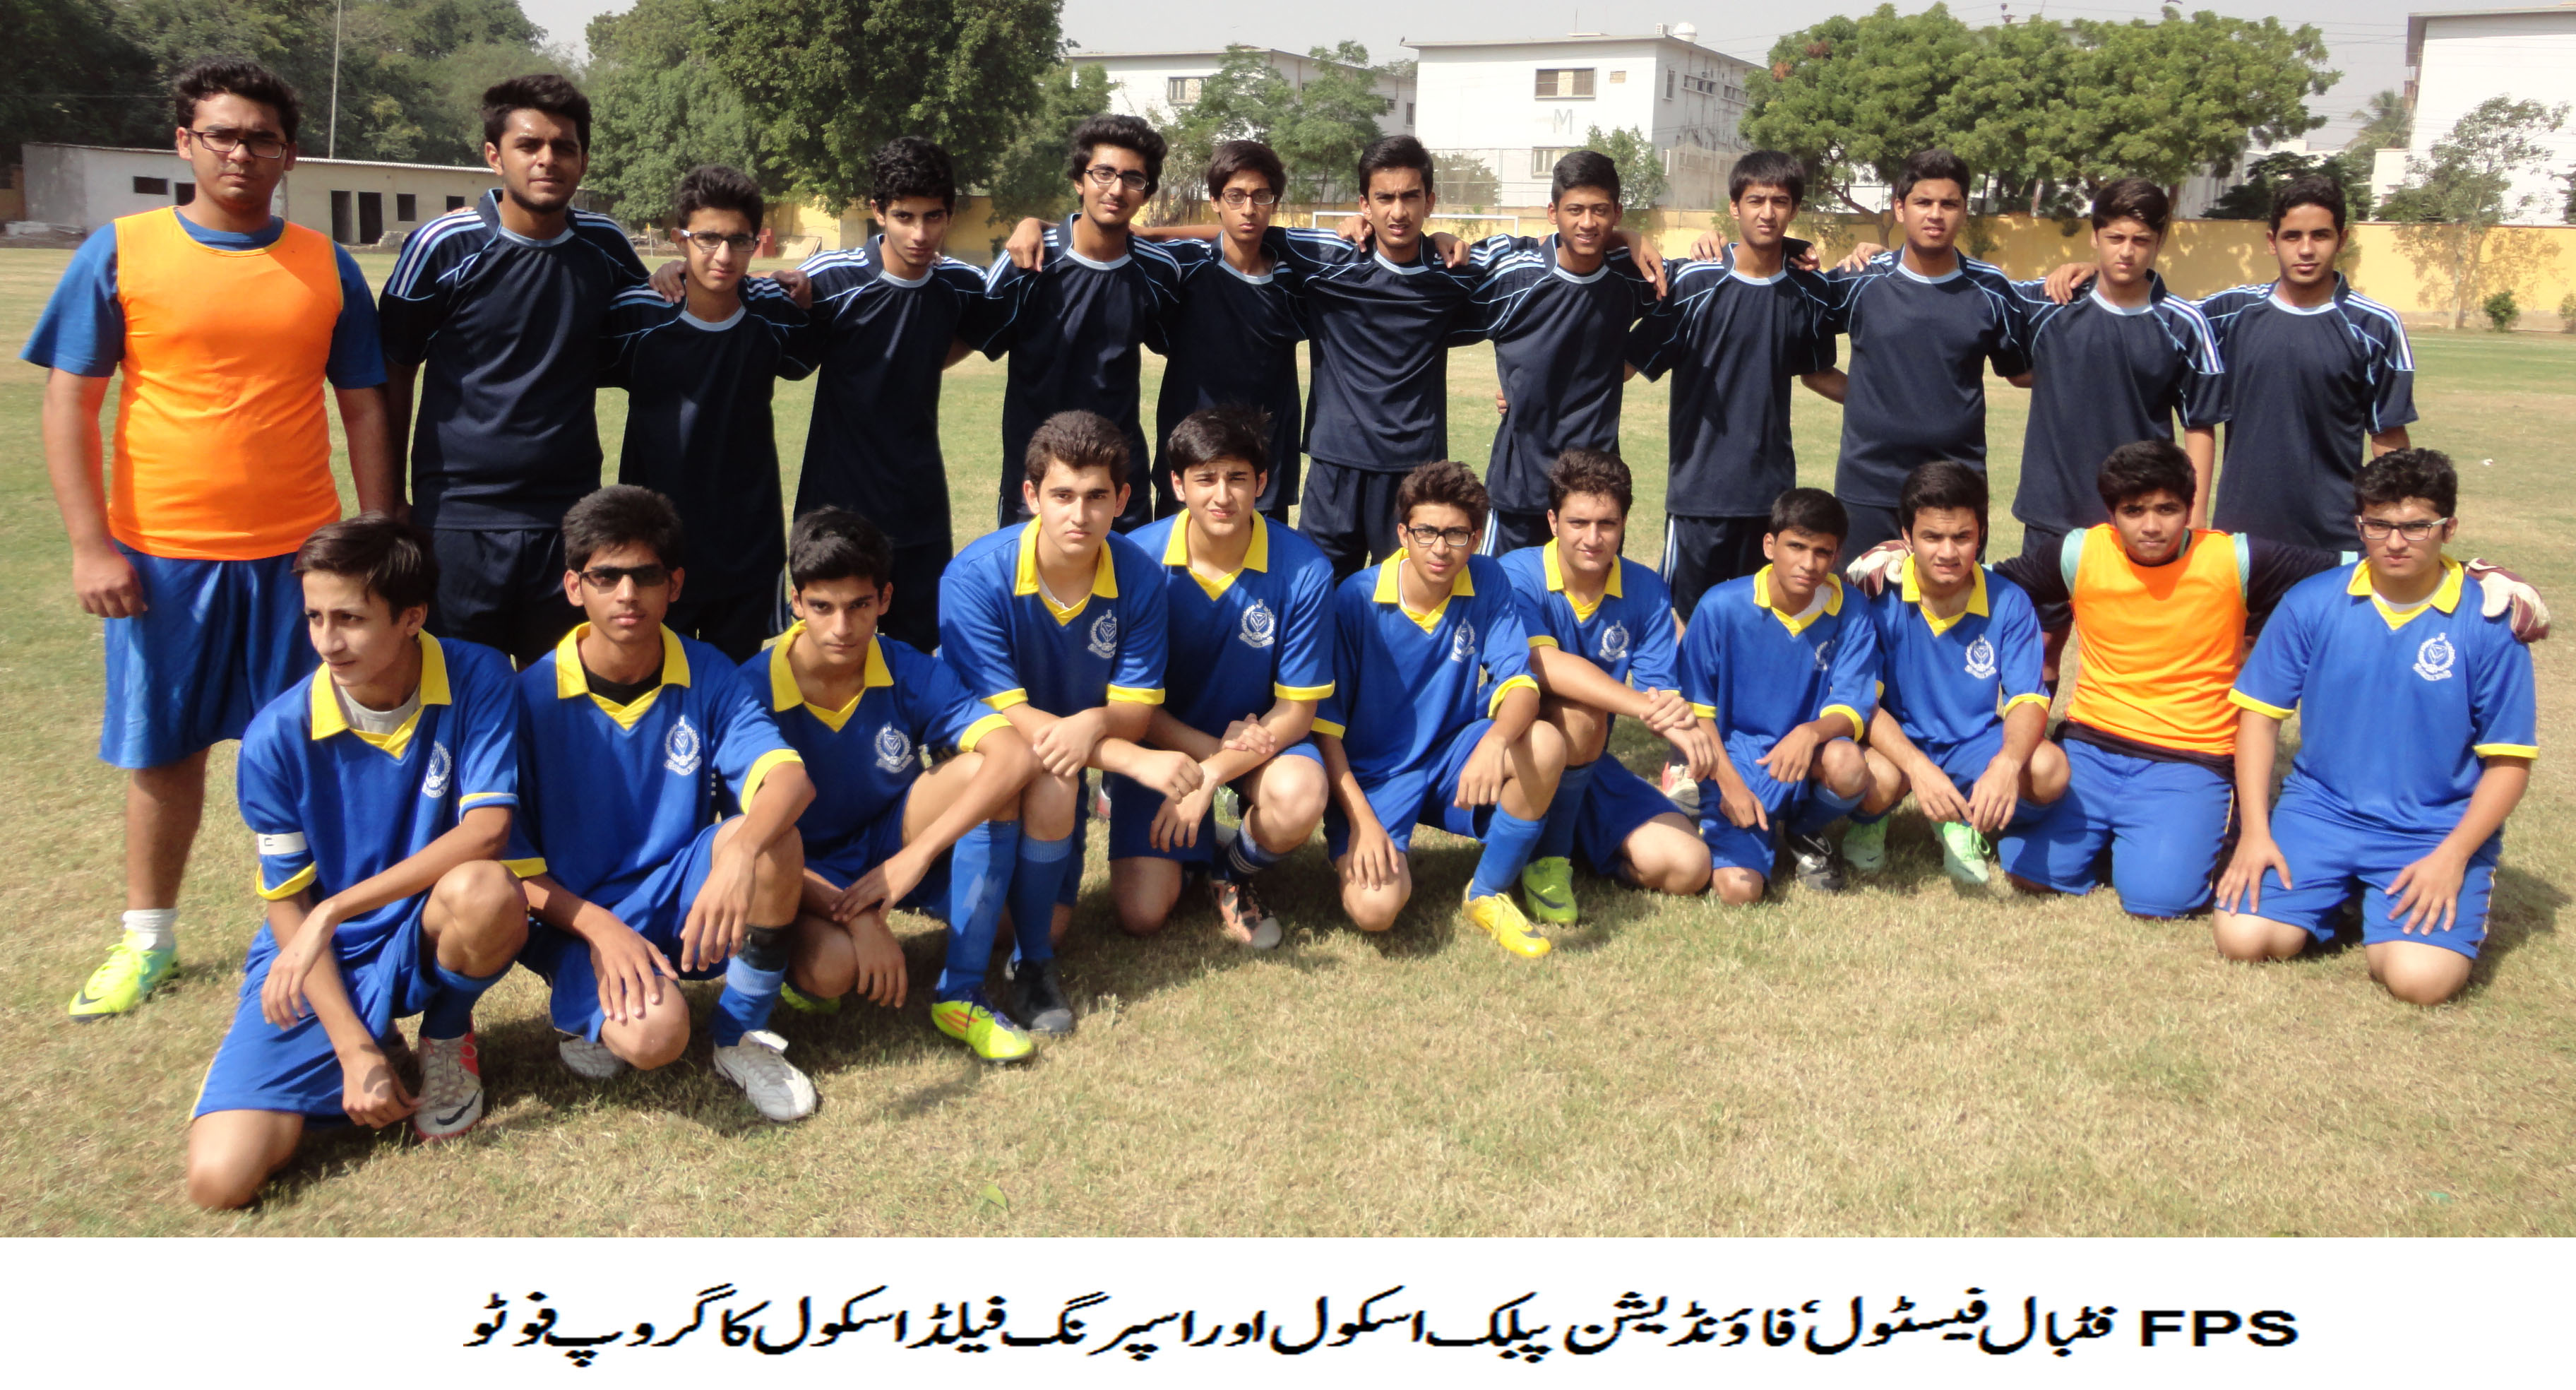 15th FPS Inter School Football Festival 2013